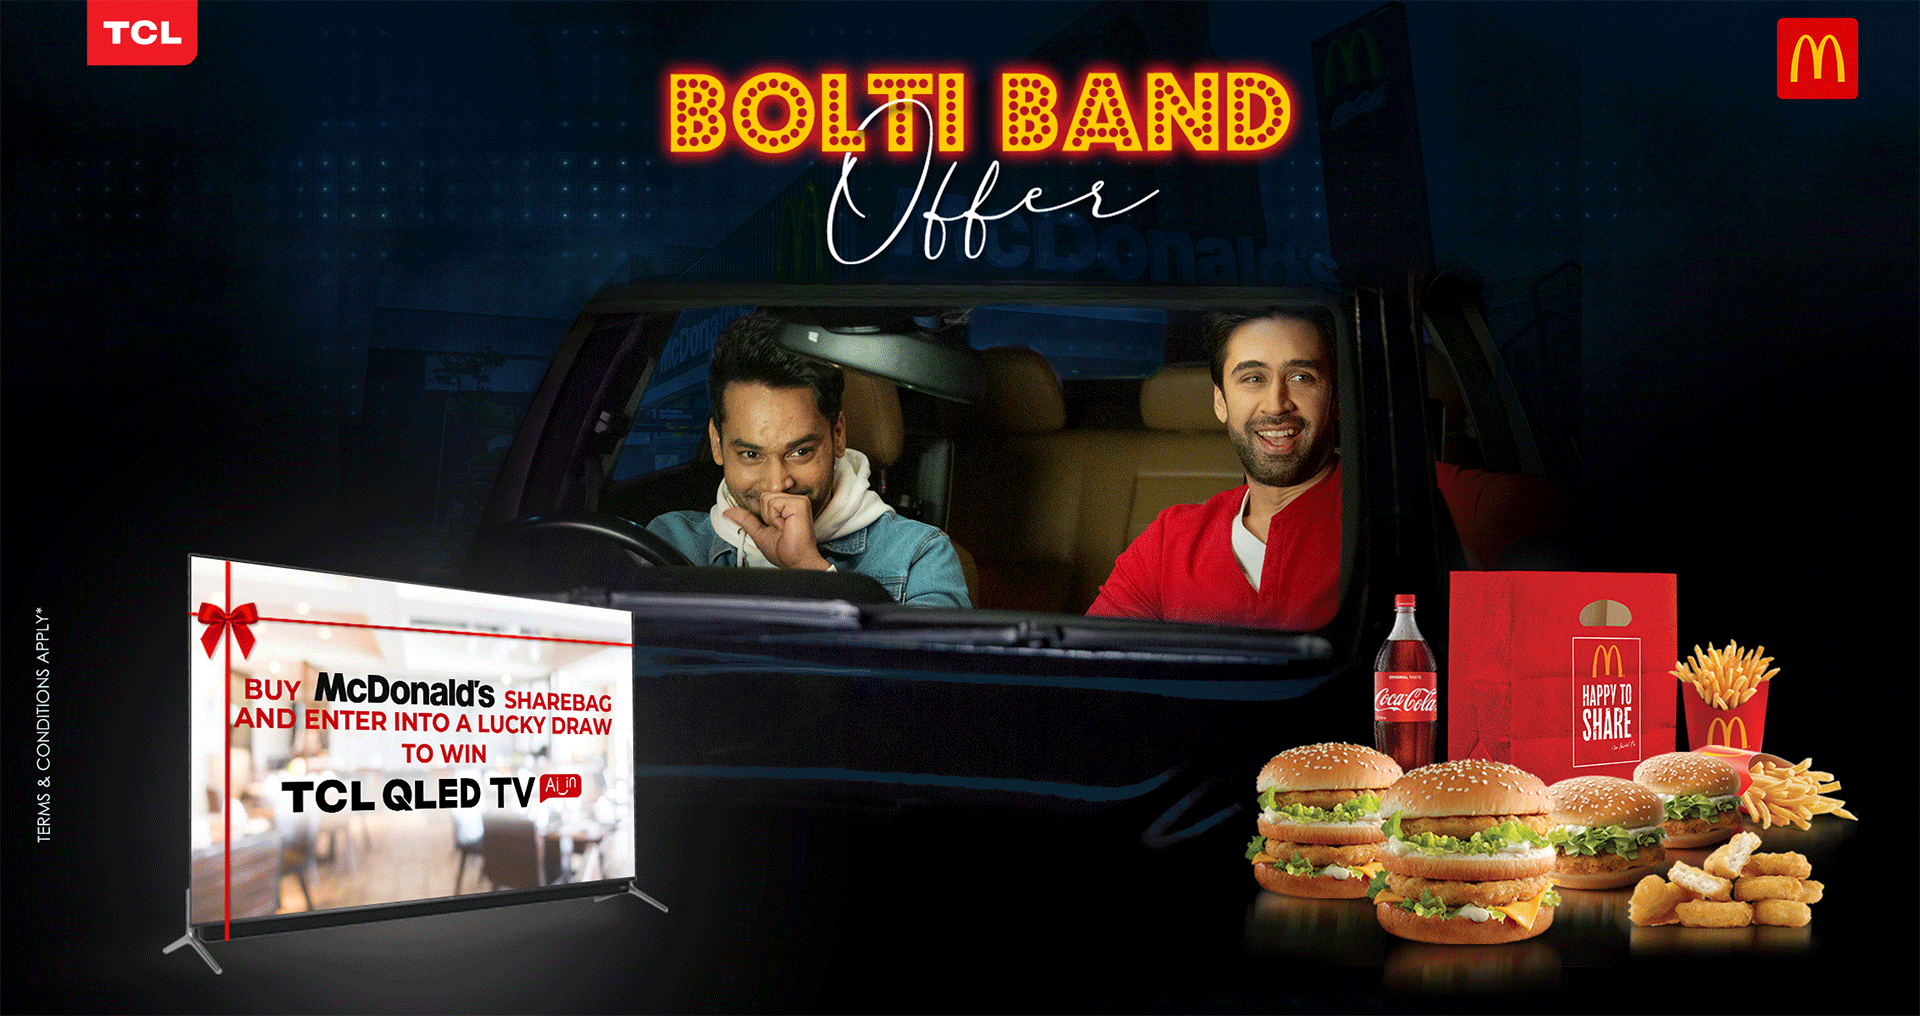 TCL and McDonald's join hands for 'Bolti Band Offer' allowing people to win QLED TVs